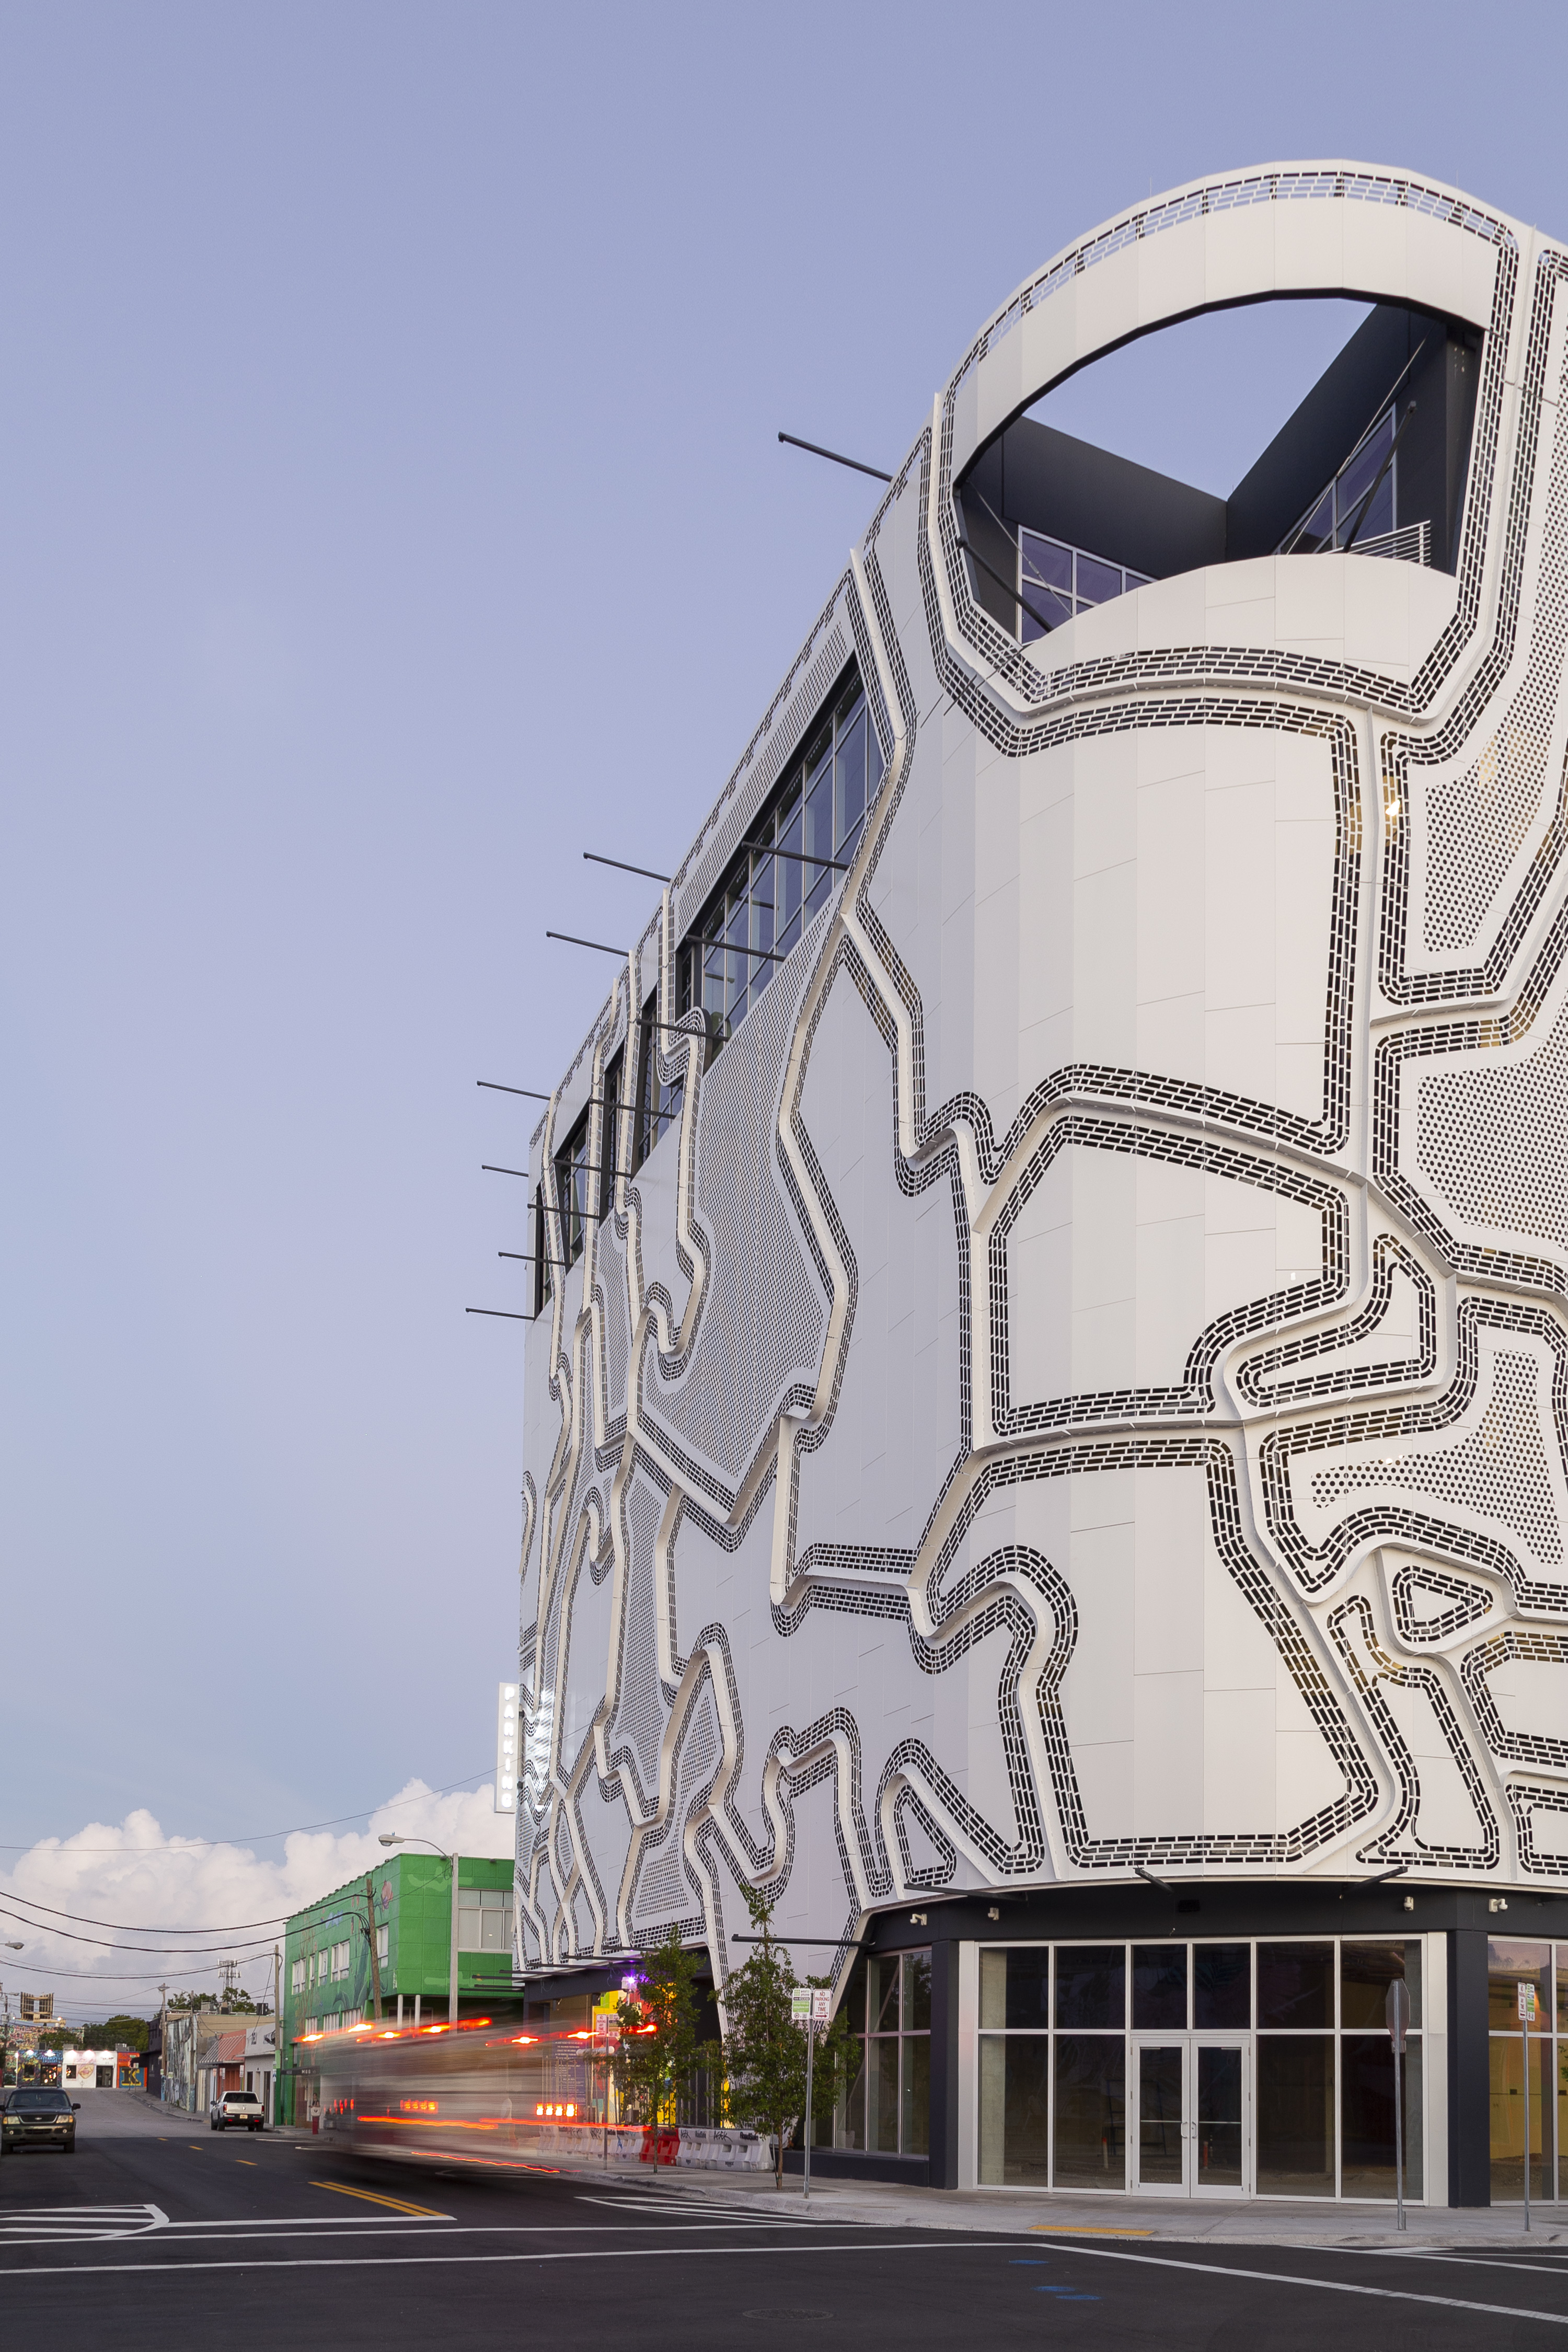 THE WALL IS DESIGNED TO ALLOW FOR ADDITIONAL ARTWORK TO BE HUNG ON THE FAÇADE.